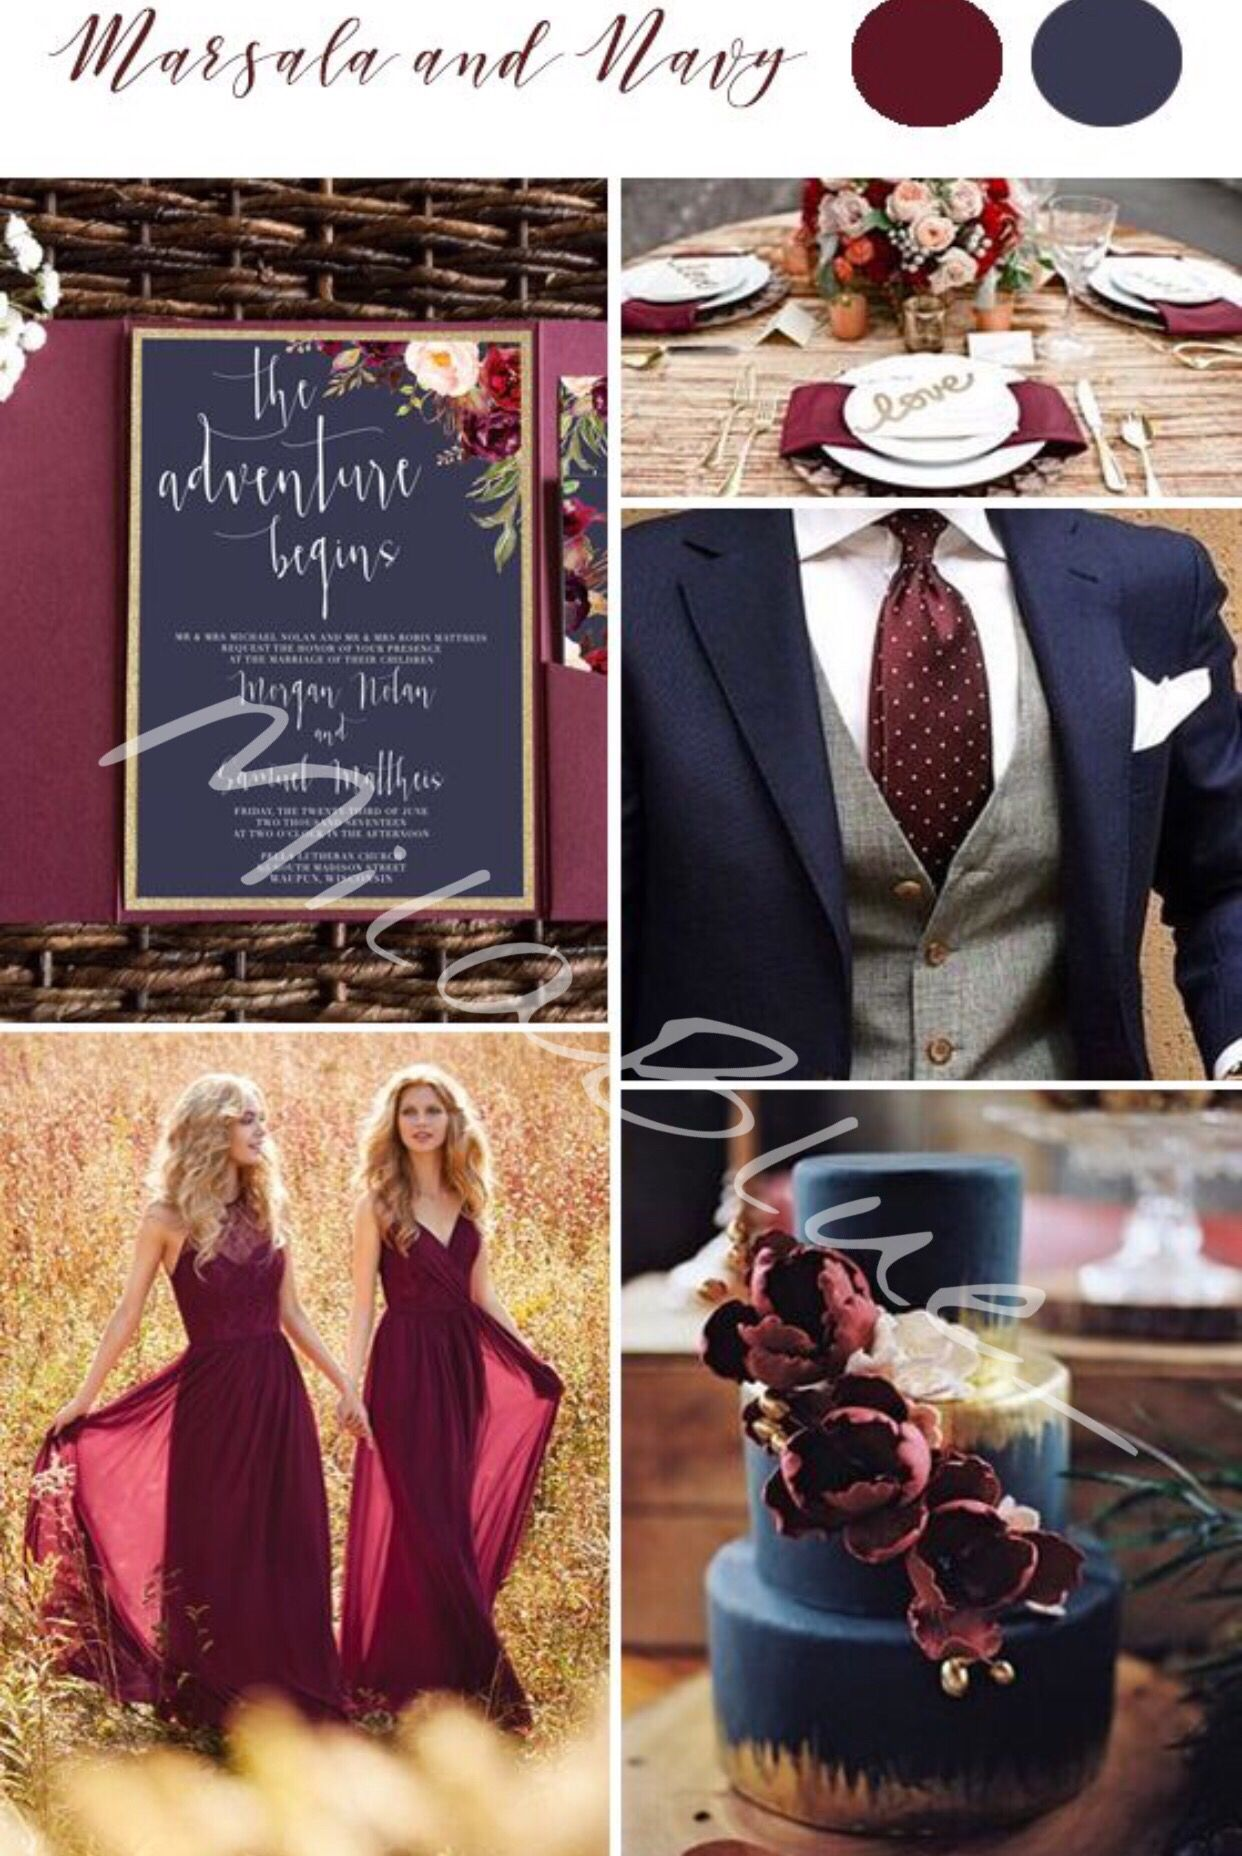 Wedding decorations styles october 2018 Maroon and navy wedding MaroonWeddingIdeas  weddings in